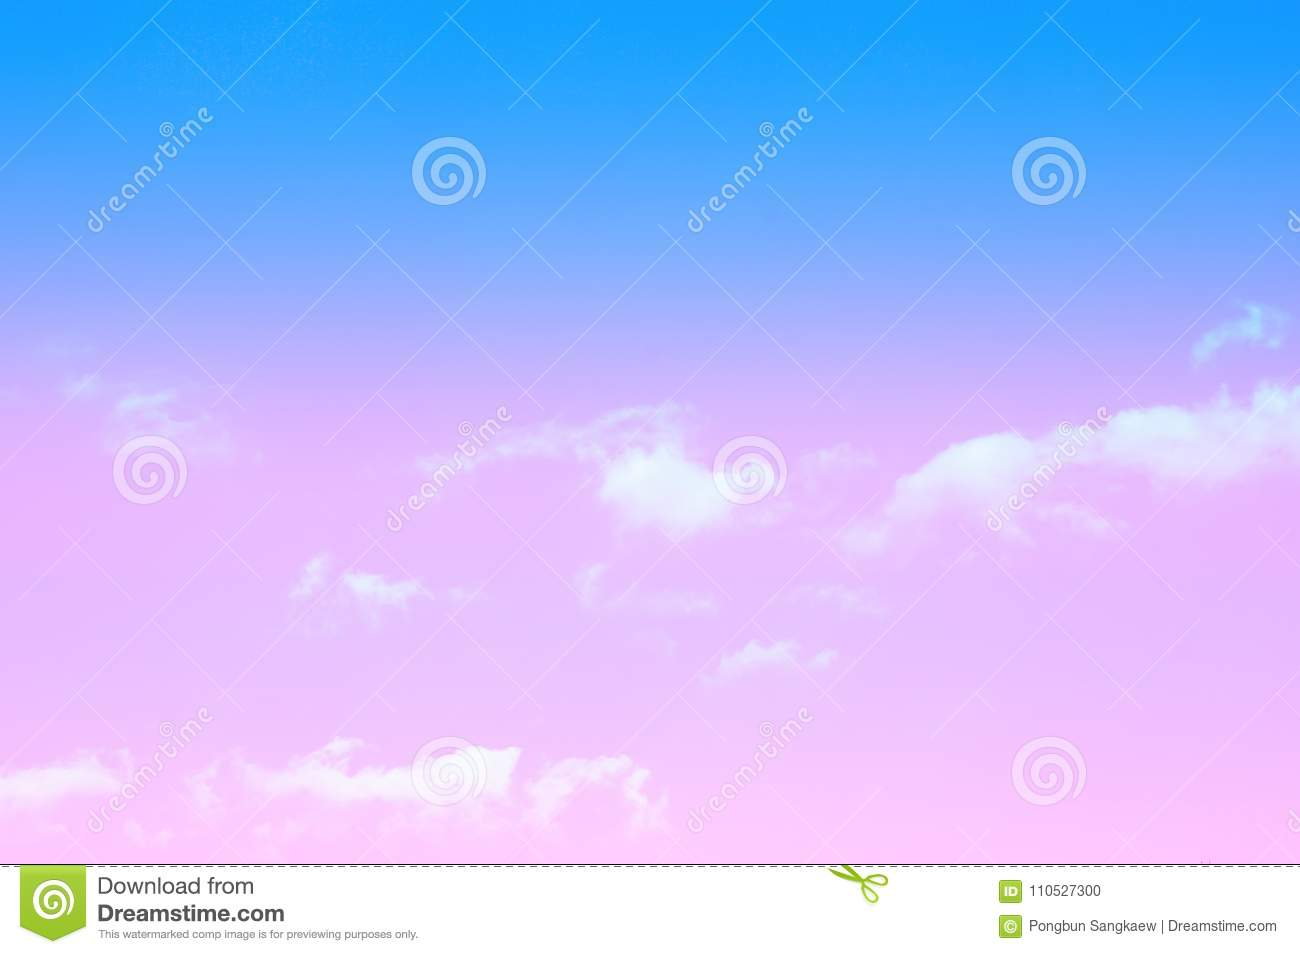 Blue sky and white clouds relax photo pastel color wallpaper